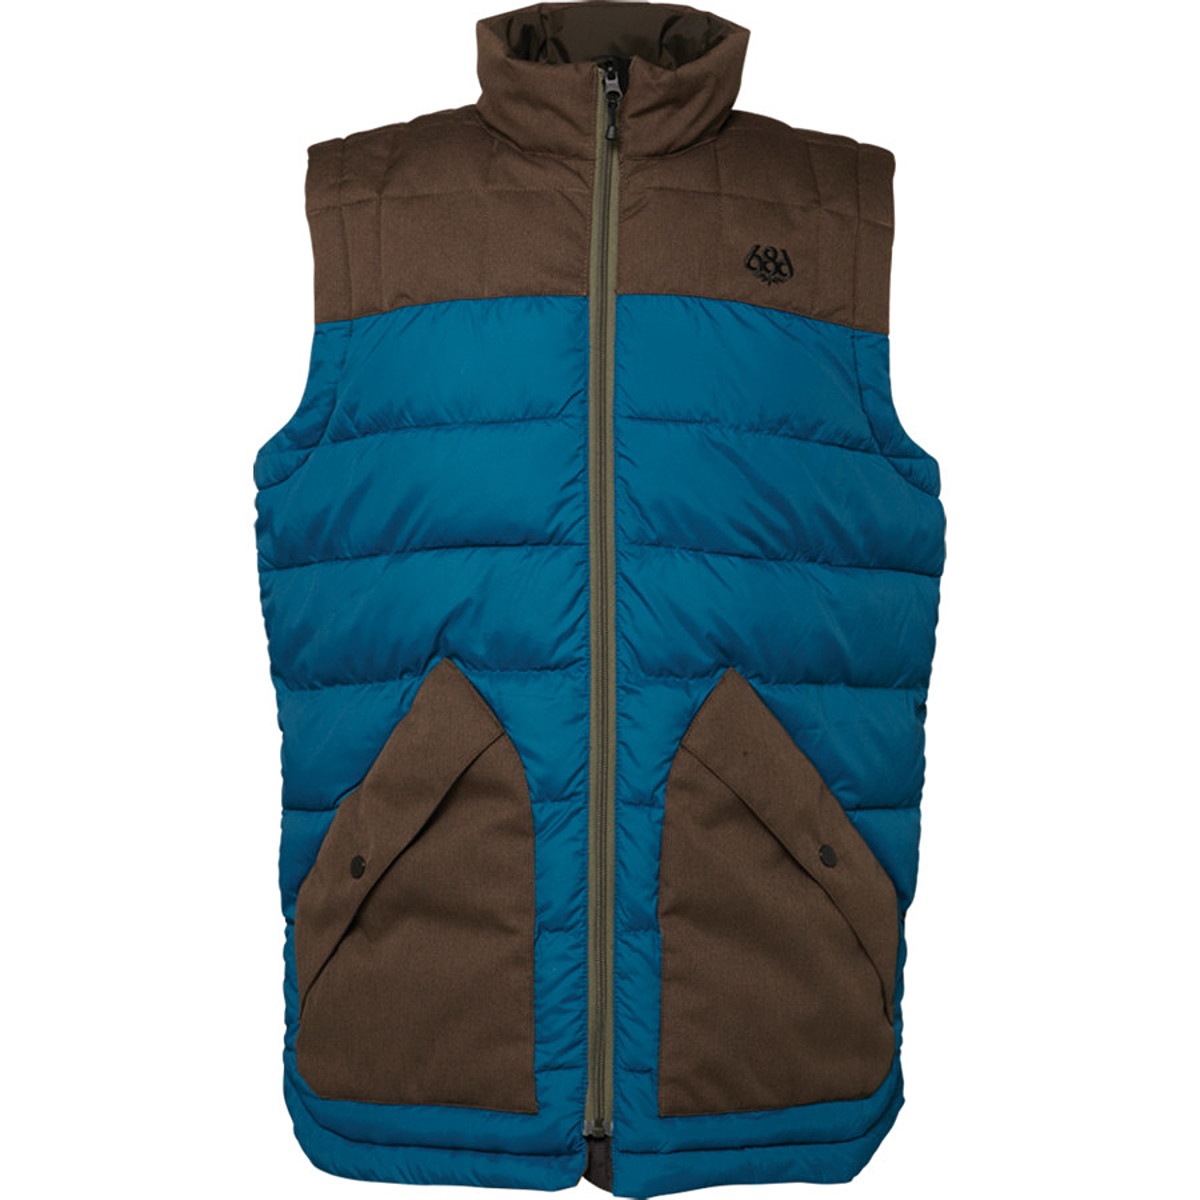 photo of a 686 synthetic insulated vest